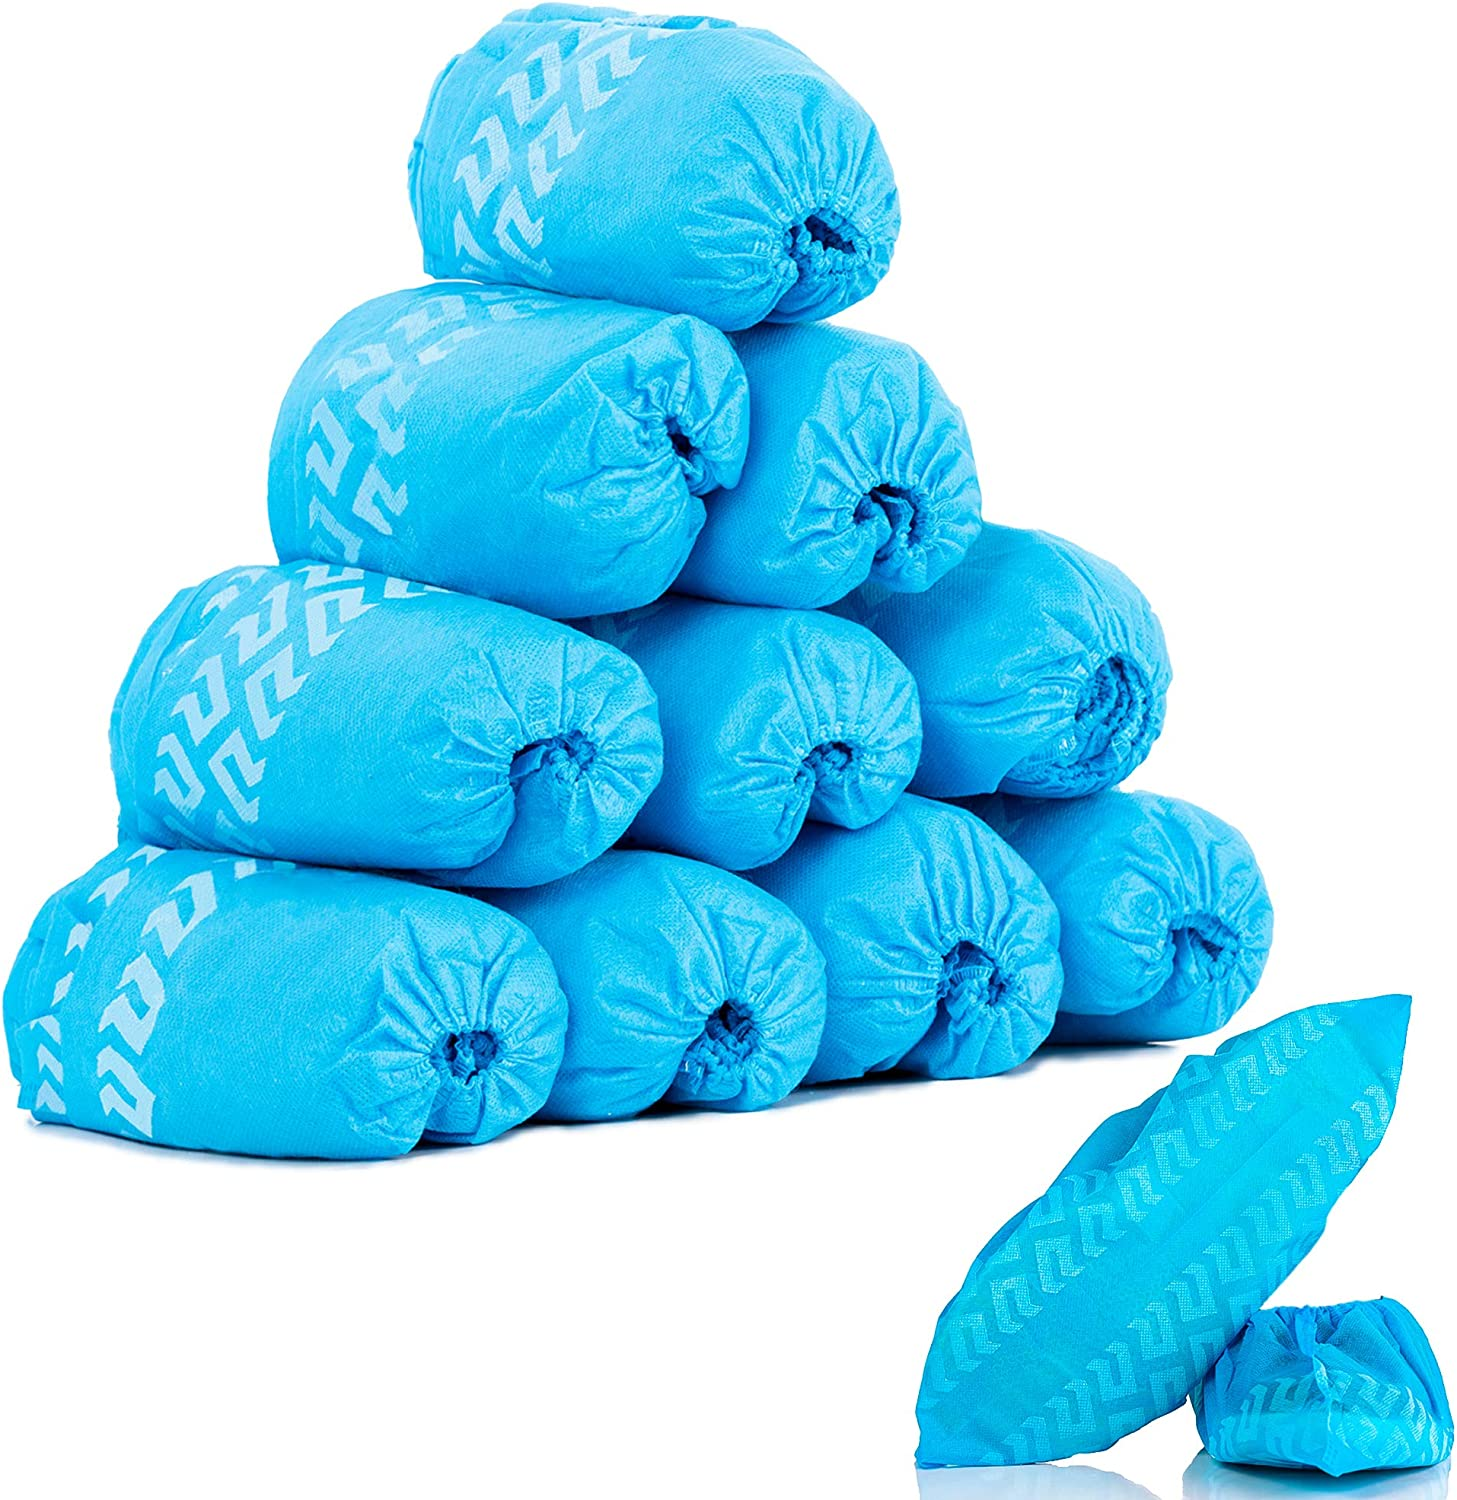 Shoe Covers Disposable Non Slip, 100 Pack (50 Pairs) Non Woven Fabric, Breathable, Non-Slip, Water Resistant Boot & Shoe Covers for Home Improvement - Indoors, Fits up to US Men 11, Women 11.5, Blue